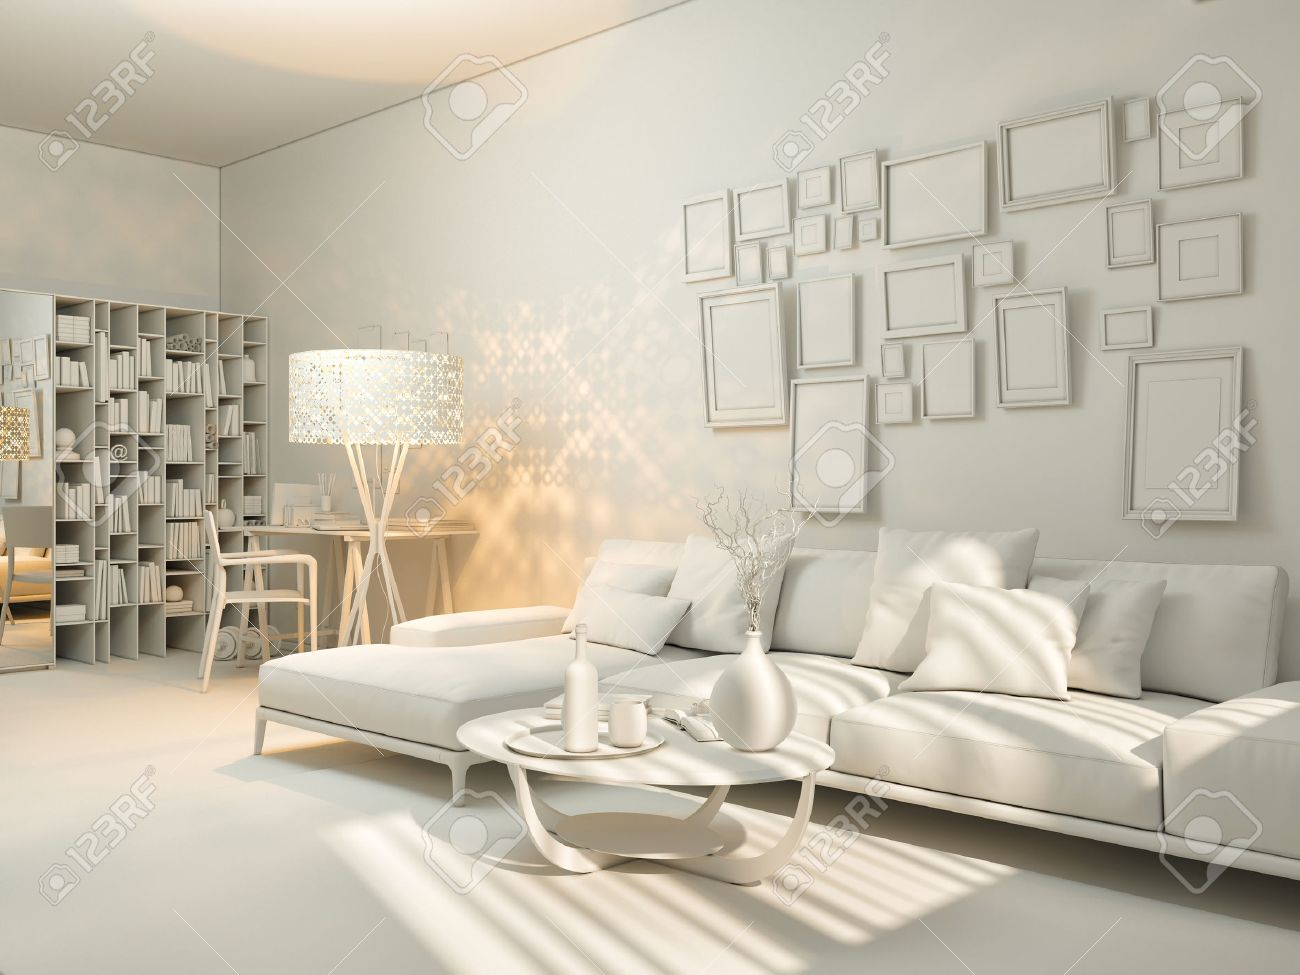 3D Render Of Interior Design Living In A Studio Apartment In A Modern Minimalist  Style.